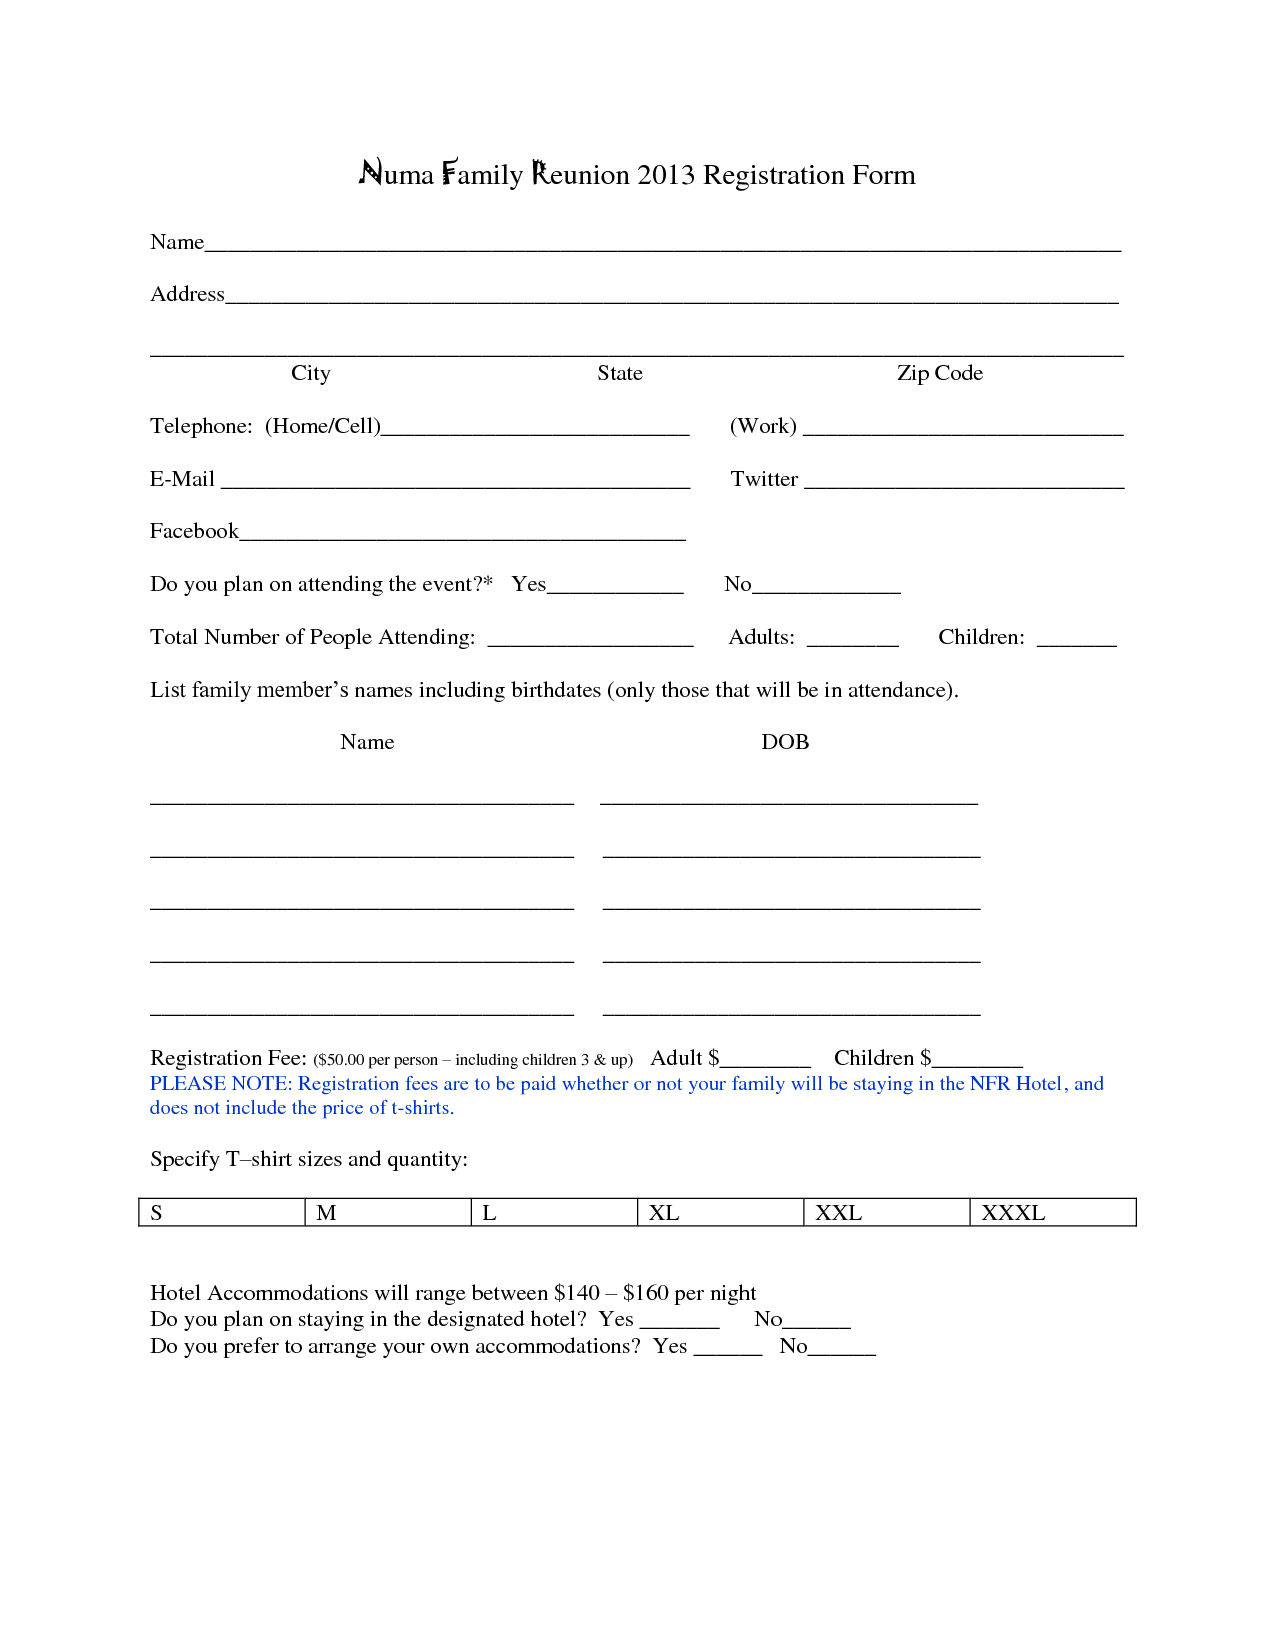 Family Reunion Registration Form Template | Family Reunions ...